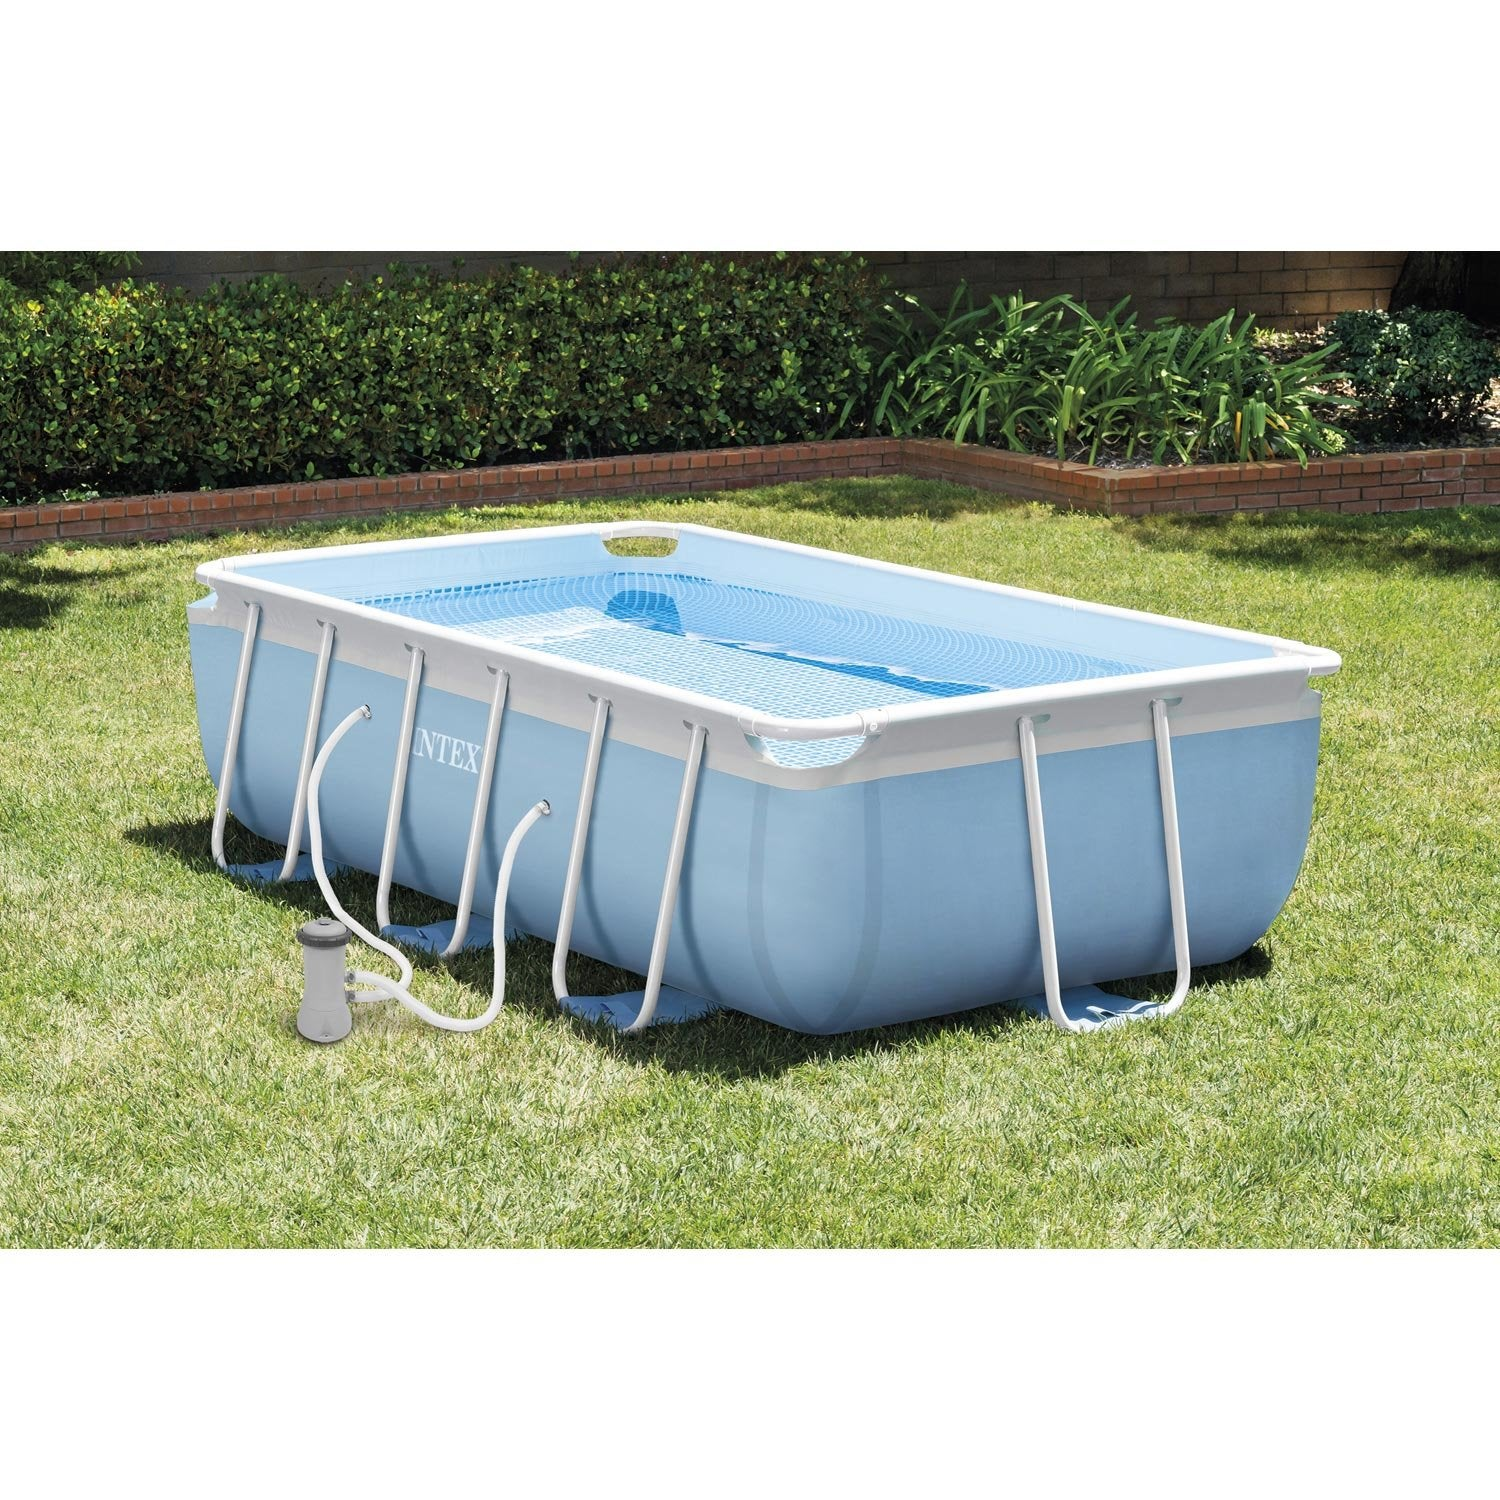 Piscine hors sol autoportante tubulaire intex l 3 4 x l 2 for Piscine hors sol dimension